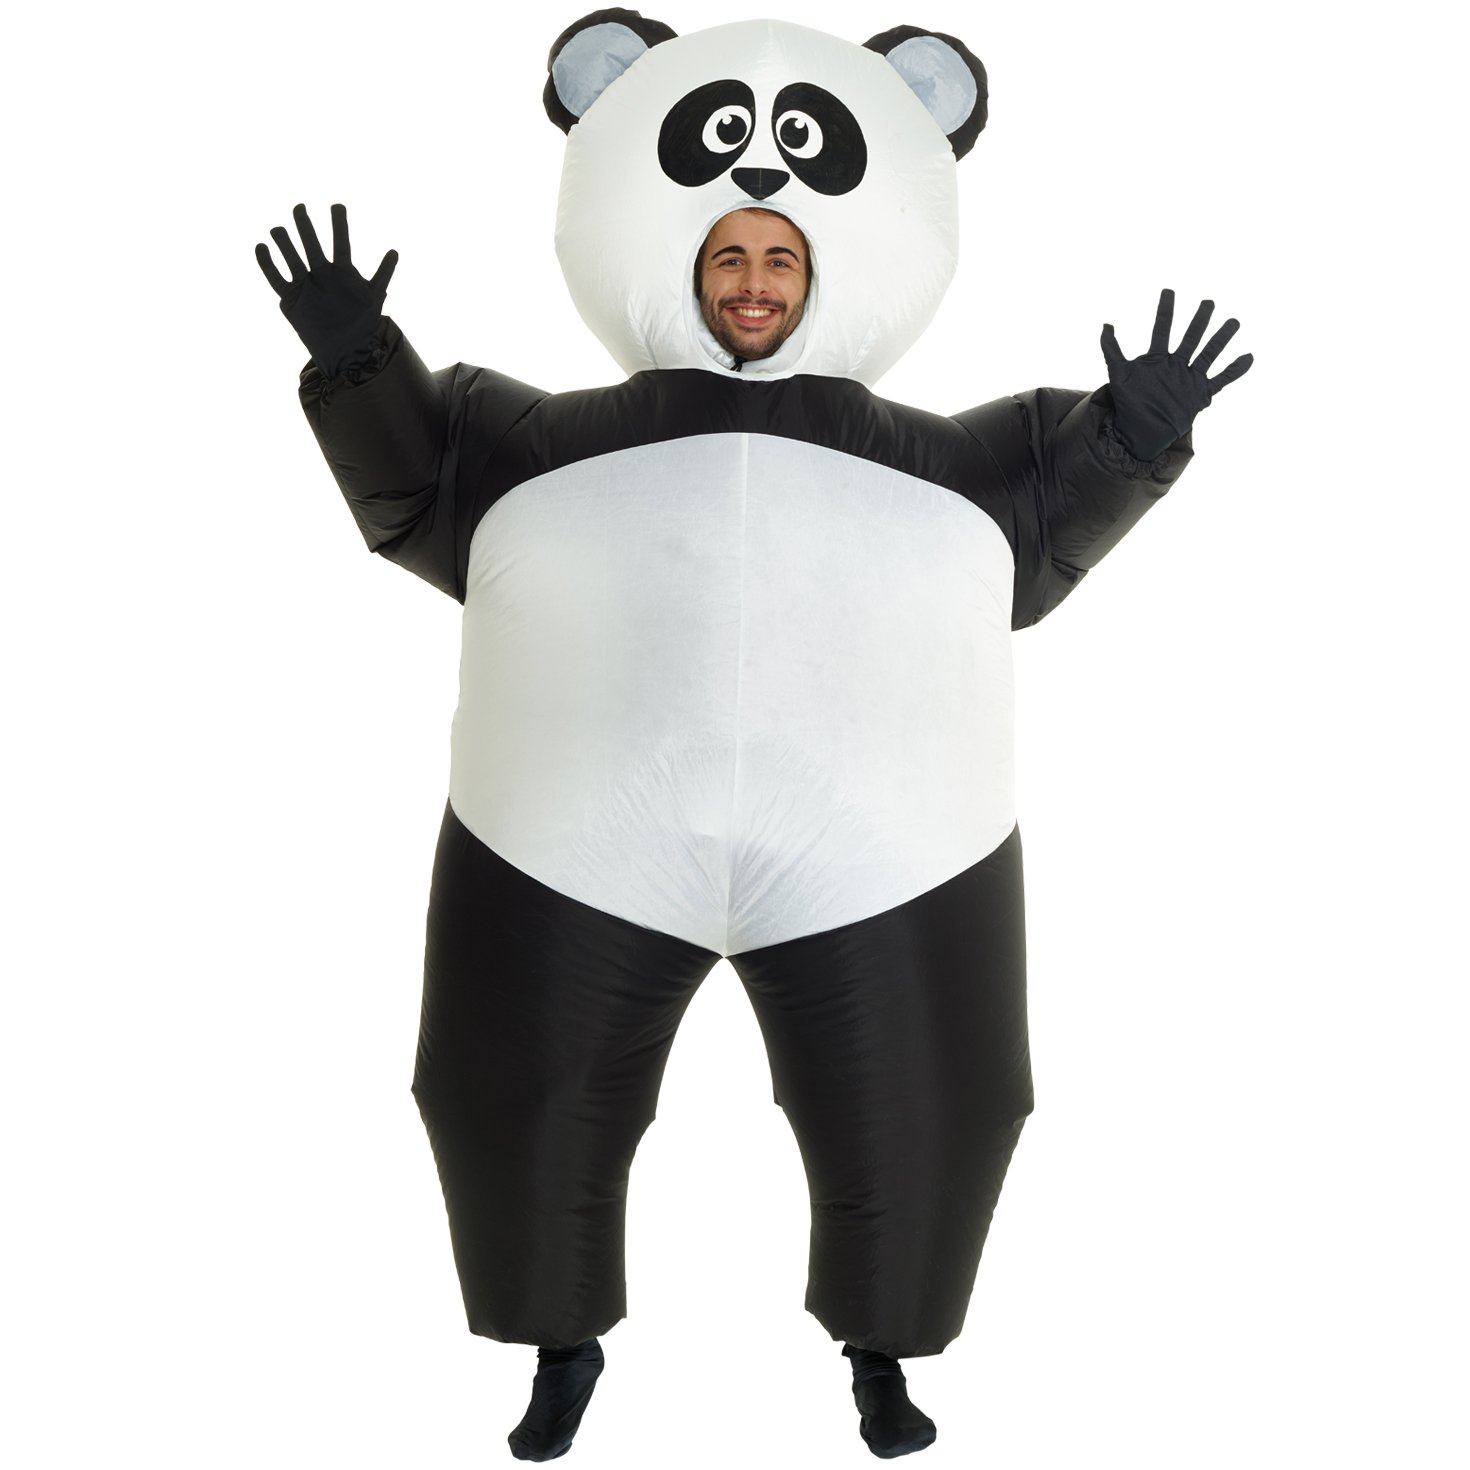 Morph Giant Panda Inflatable Blow up Costume Costume - One Size fits Most